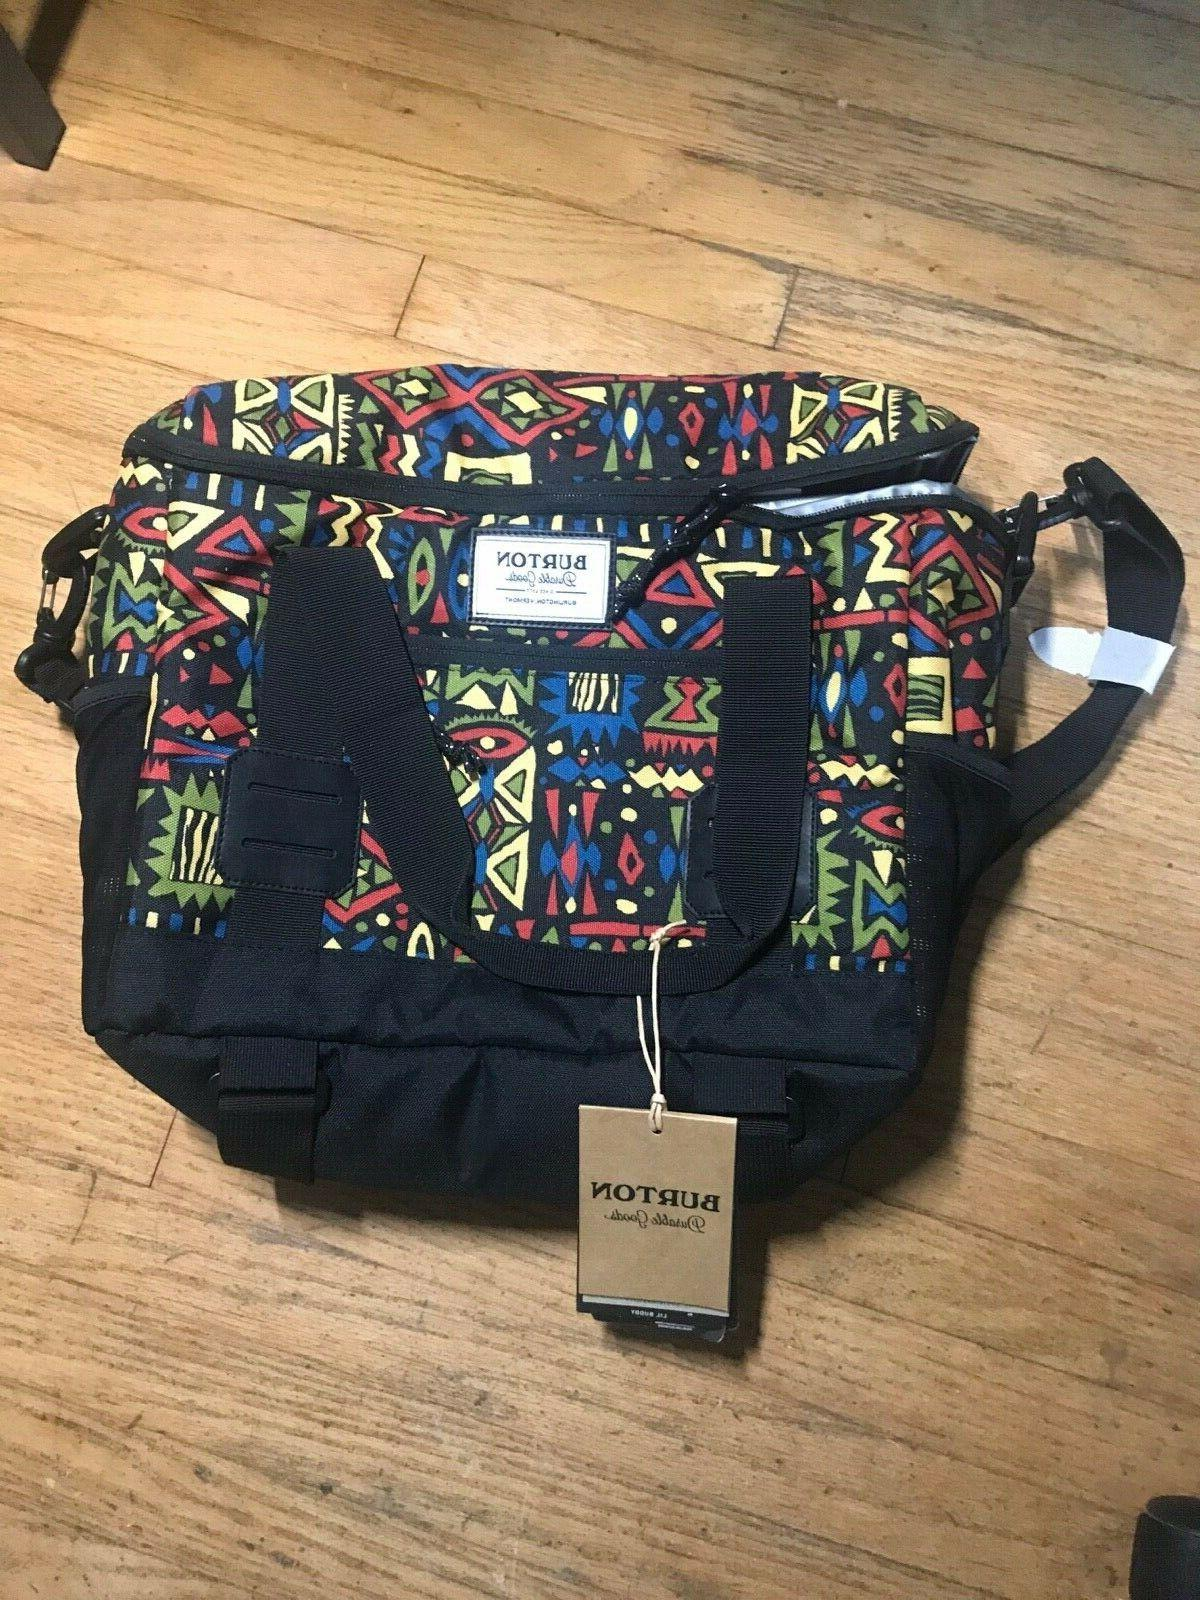 nwt lil buddy outland insulated beverage cooler